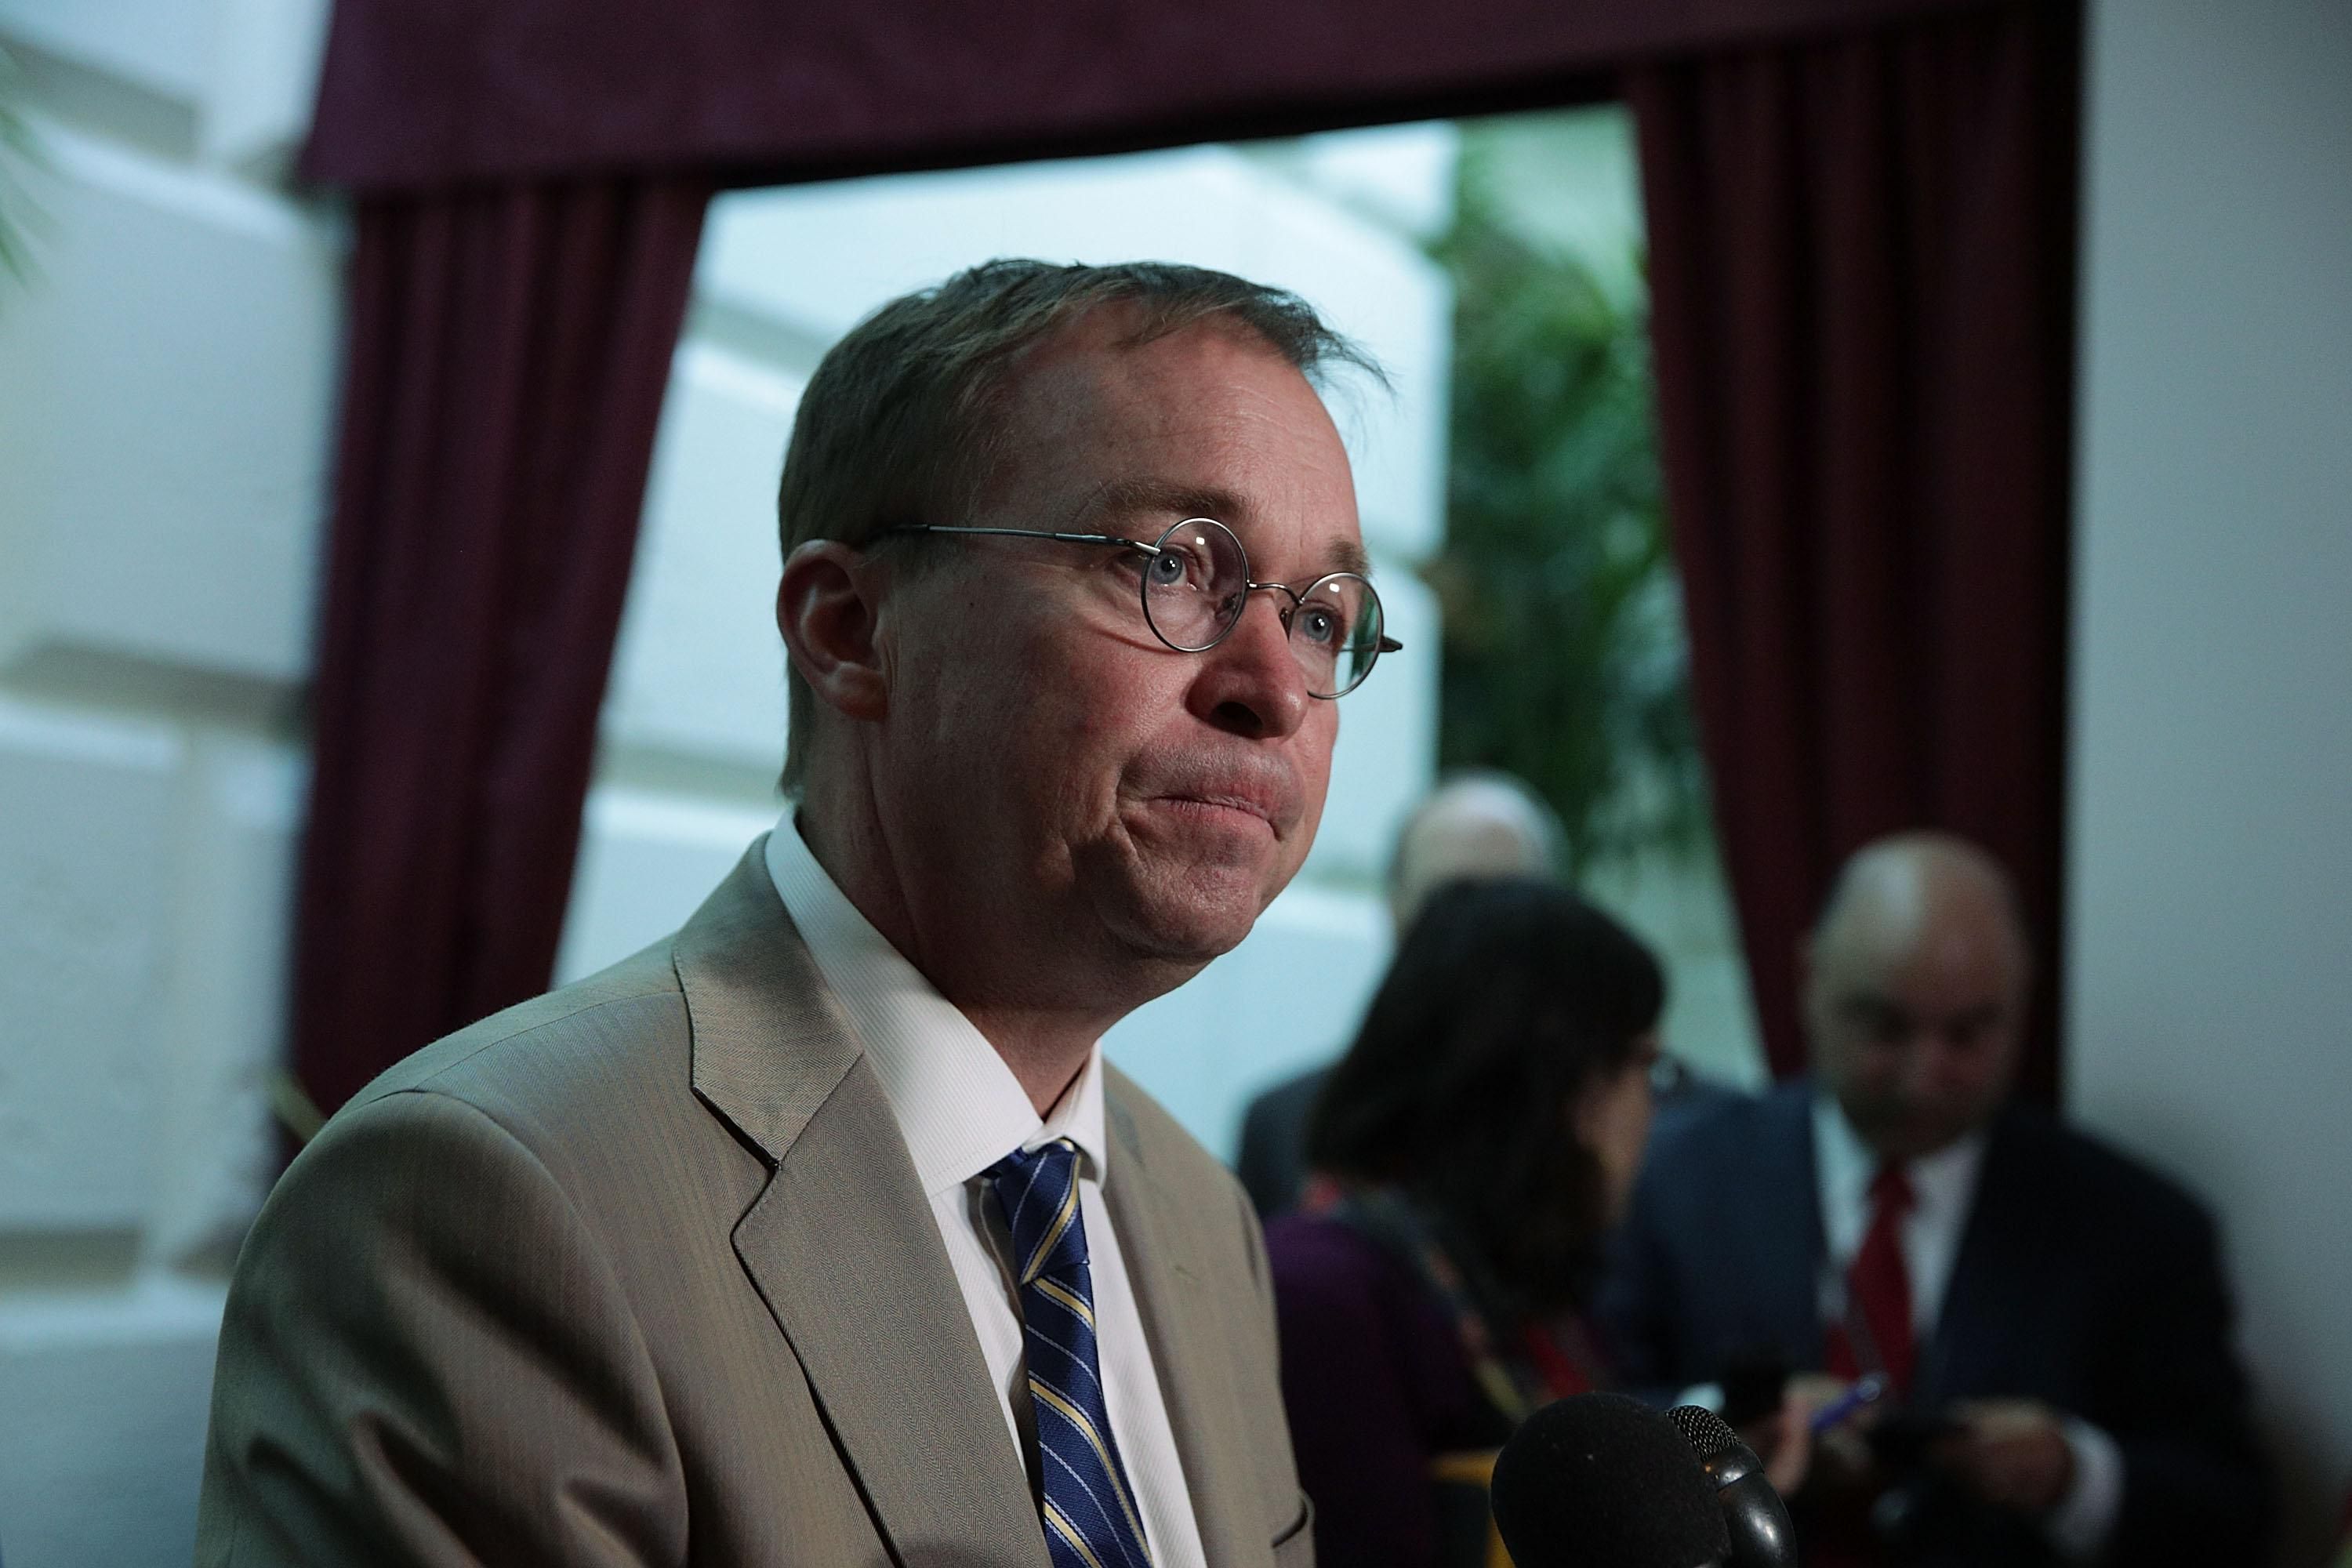 WASHINGTON, DC - SEPTEMBER 08:  White House Budget Director Mick Mulvaney speaks to members of the media after a House Republican Conference meeting September 8, 2017 at the Capitol in Washington, DC. Mulvaney was on the Hill to push for the Trump Administration's Hurricane Harvey relief and debt limit package.  (Photo by Alex Wong/Getty Images)